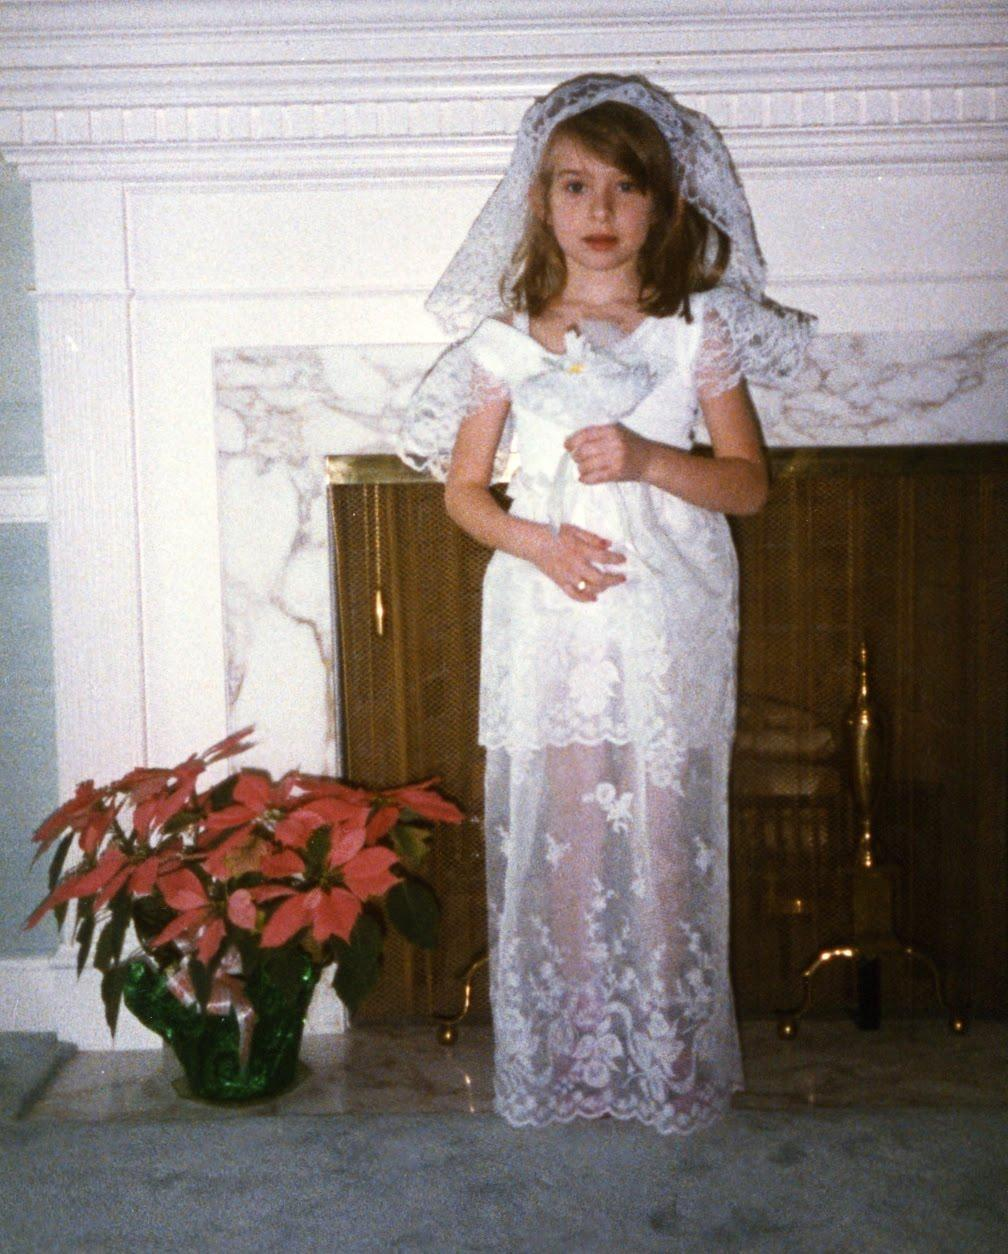 A Picture of My Wedding Dress!